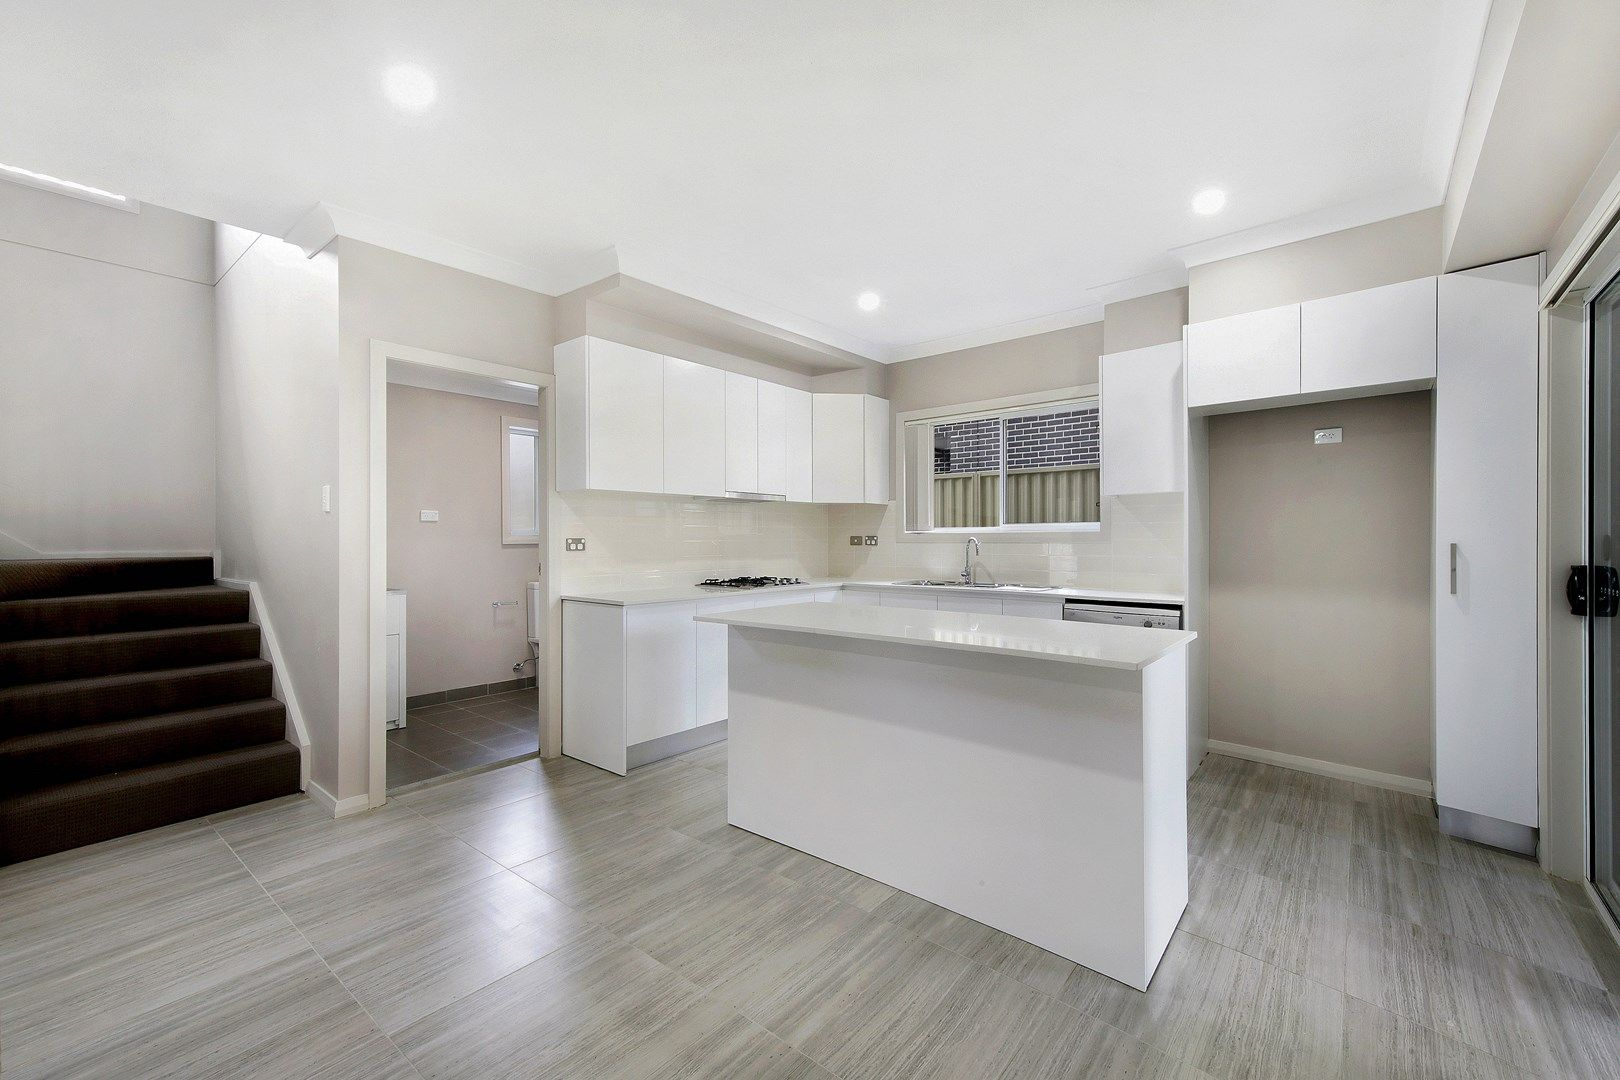 4/33 St Albans Road, Schofields NSW 2762, Image 1